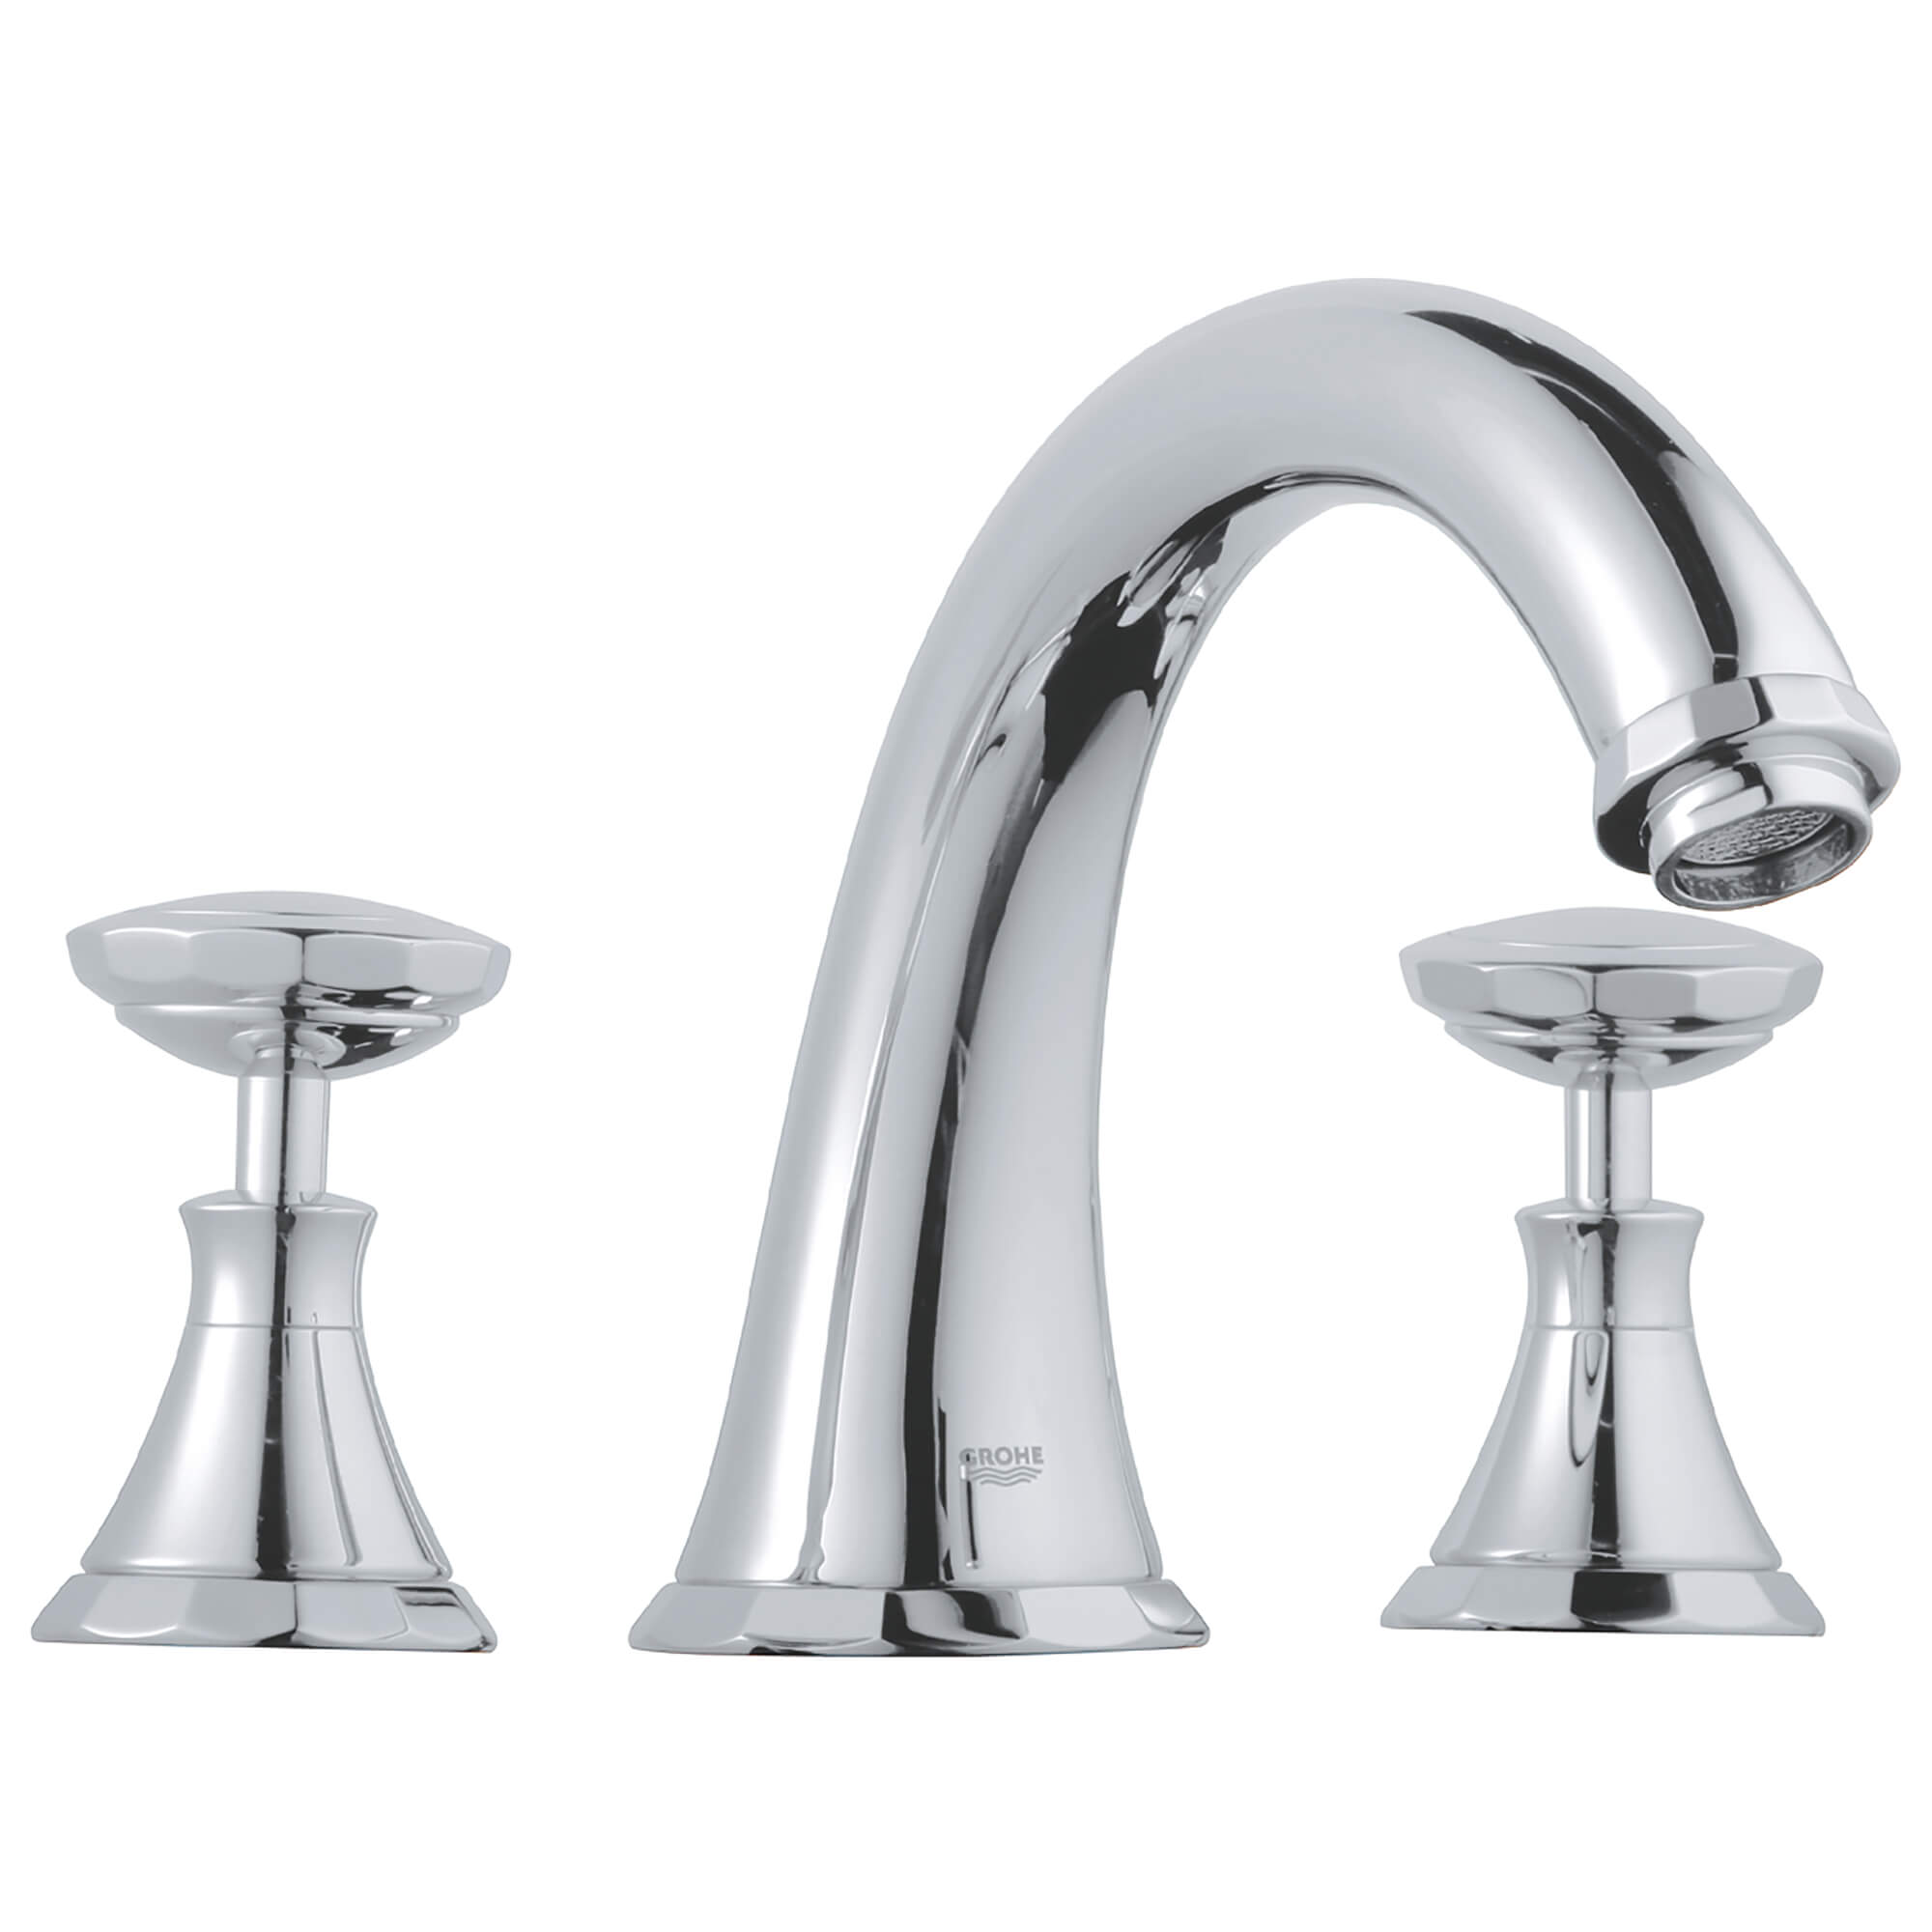 Swarovski Crystal Handles Pair GROHE CHROME